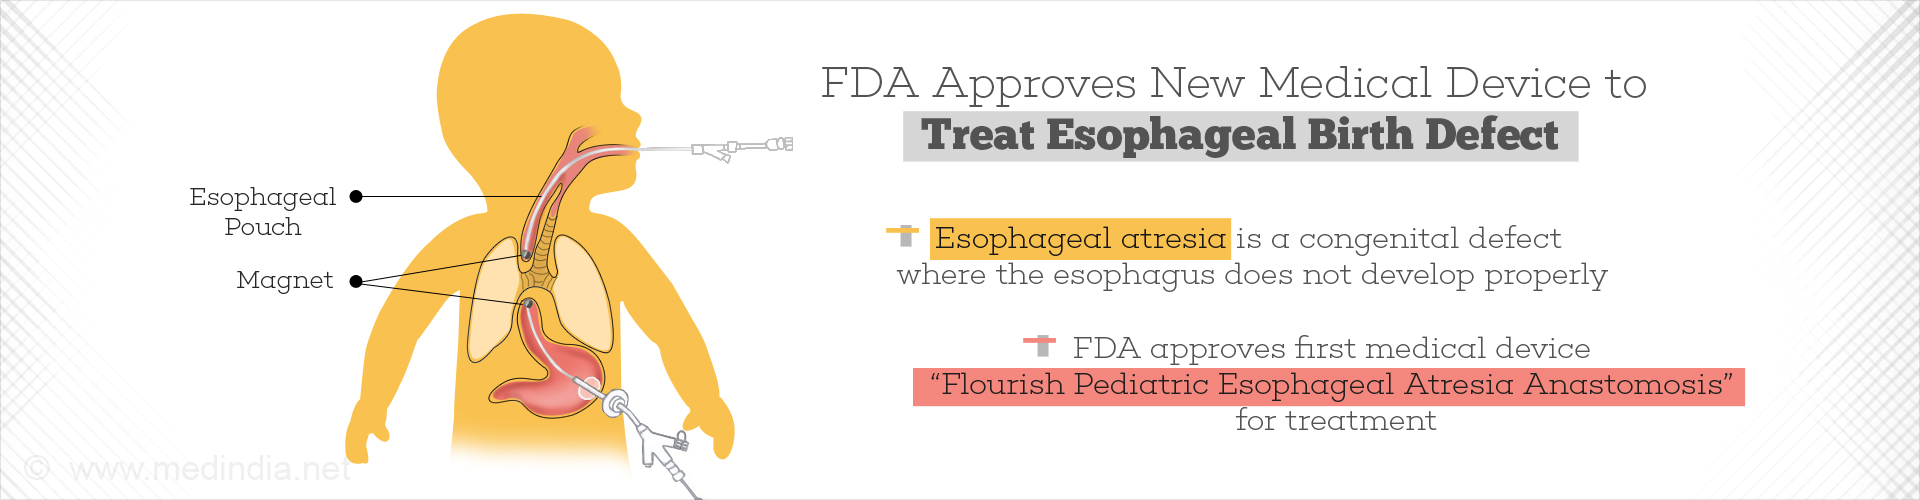 FDA Authorizes First Medical Device for Esophageal Birth Defect in Babies